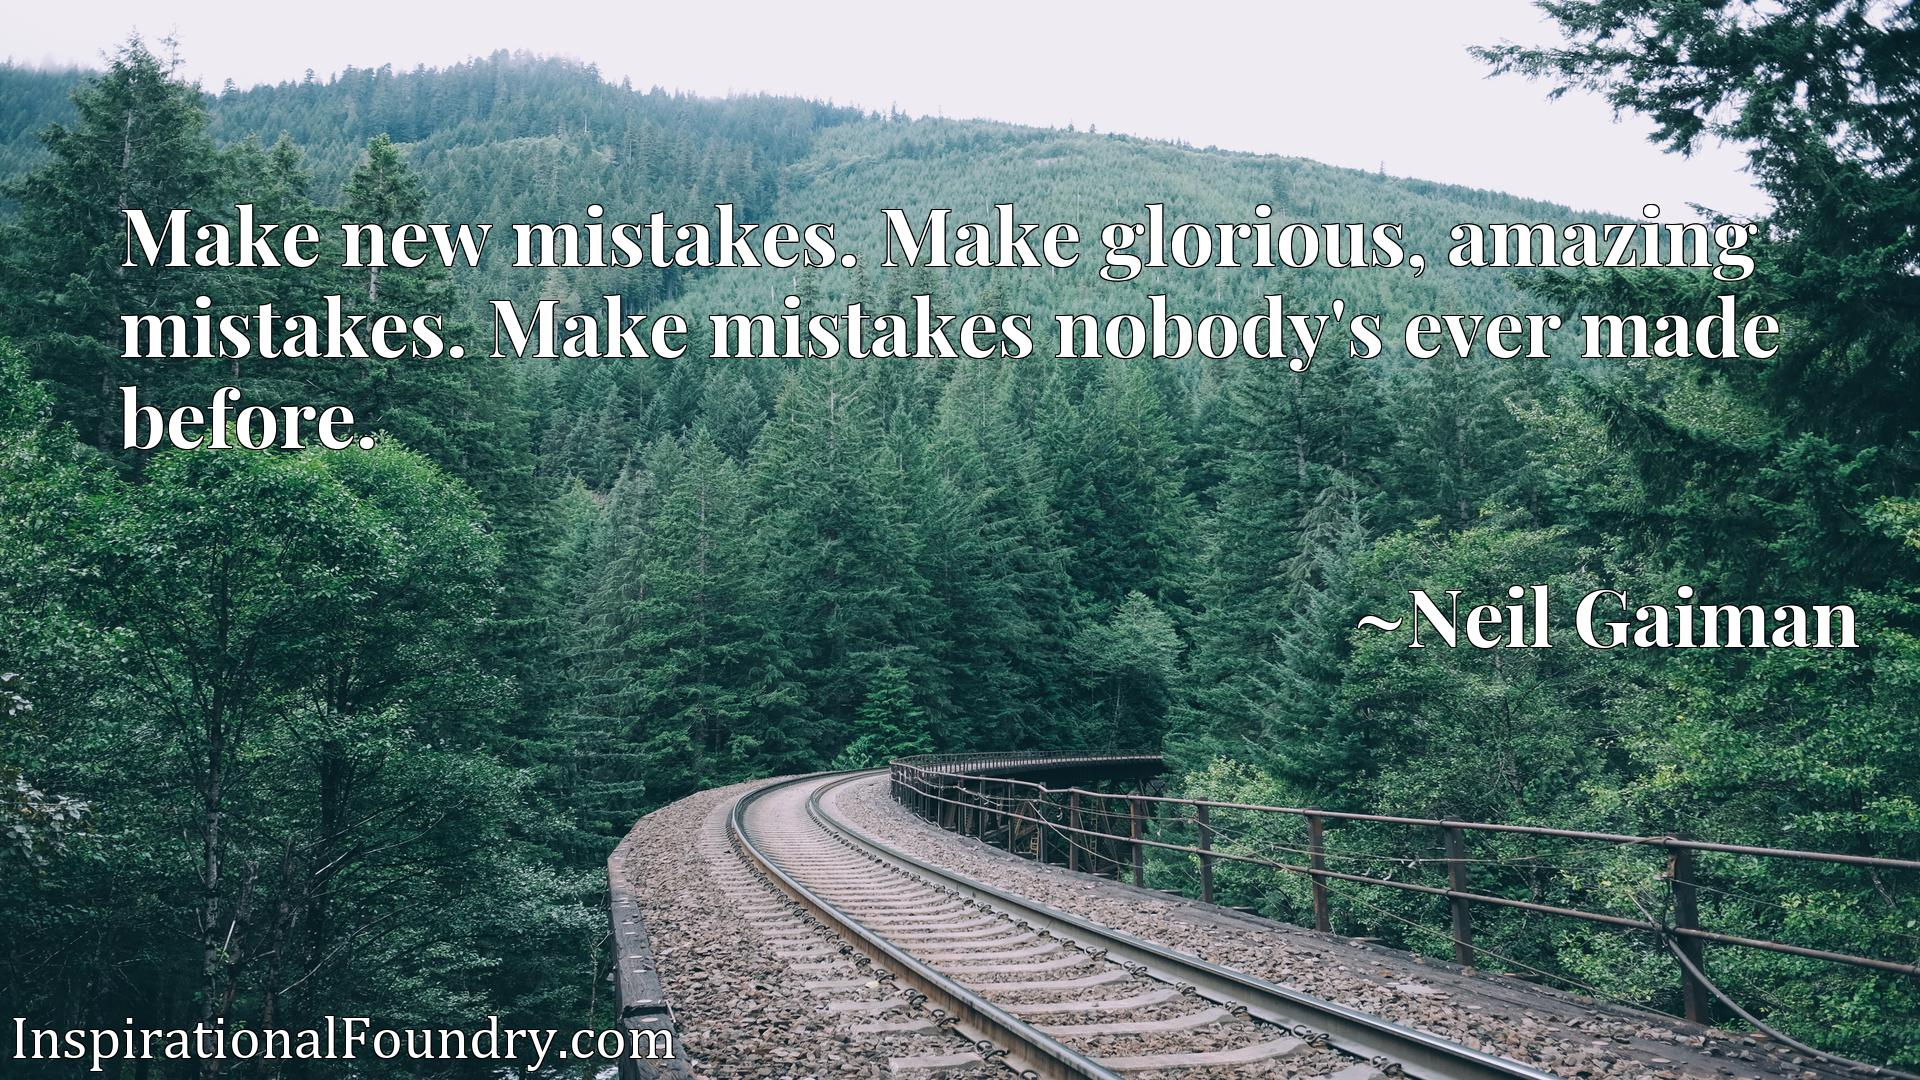 Make new mistakes. Make glorious, amazing mistakes. Make mistakes nobody's ever made before.